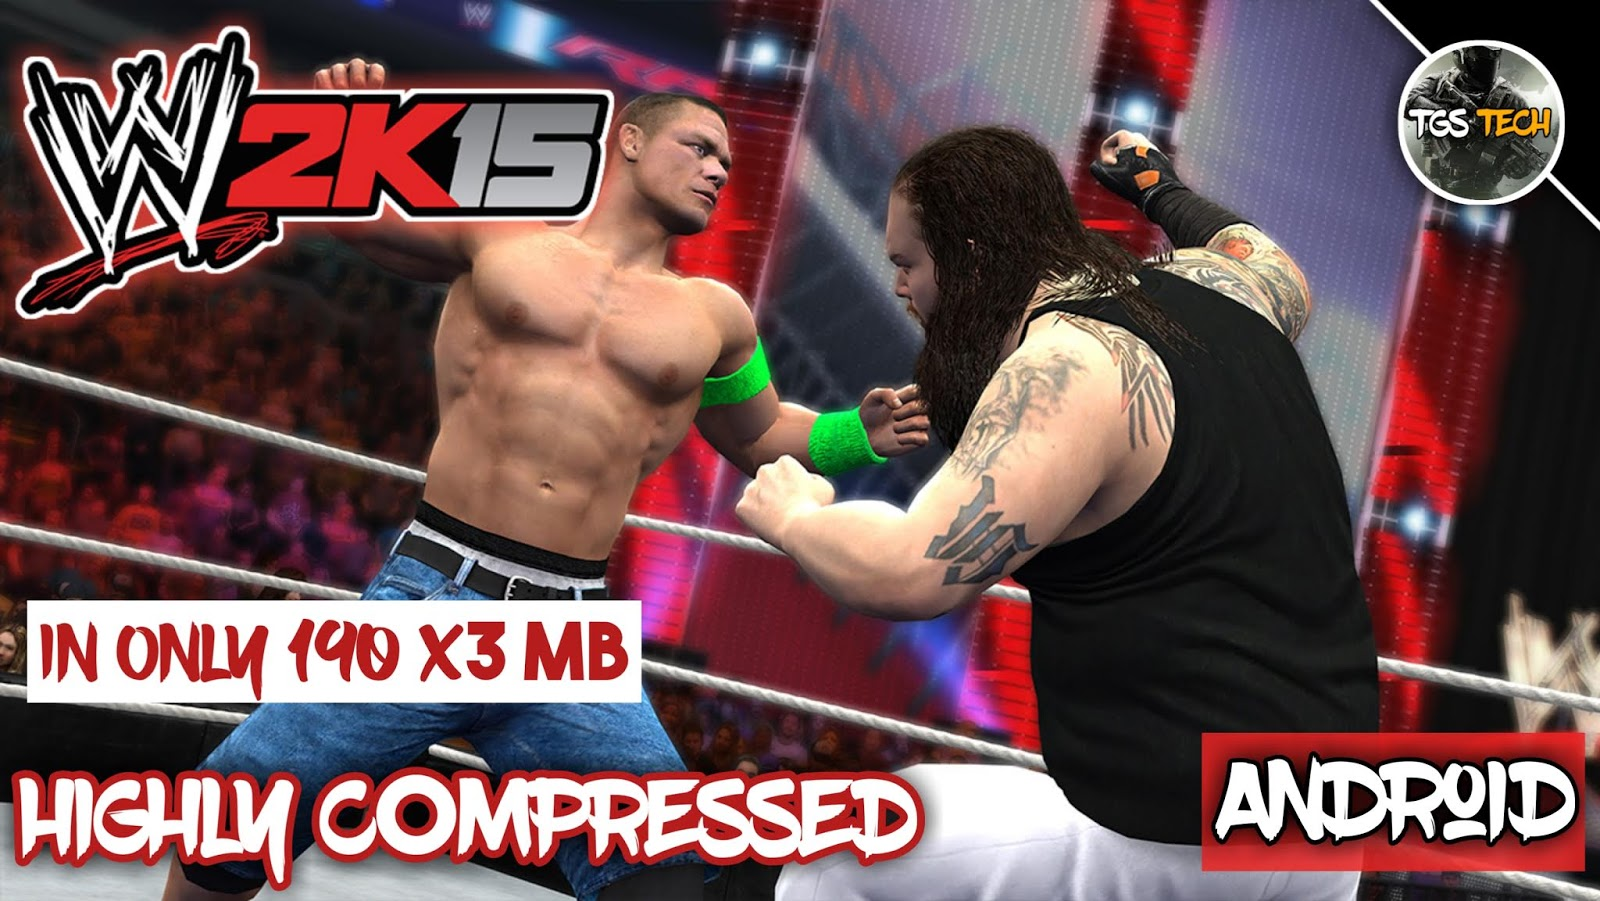 How to Download WWE 2k15 In android highly compressed in